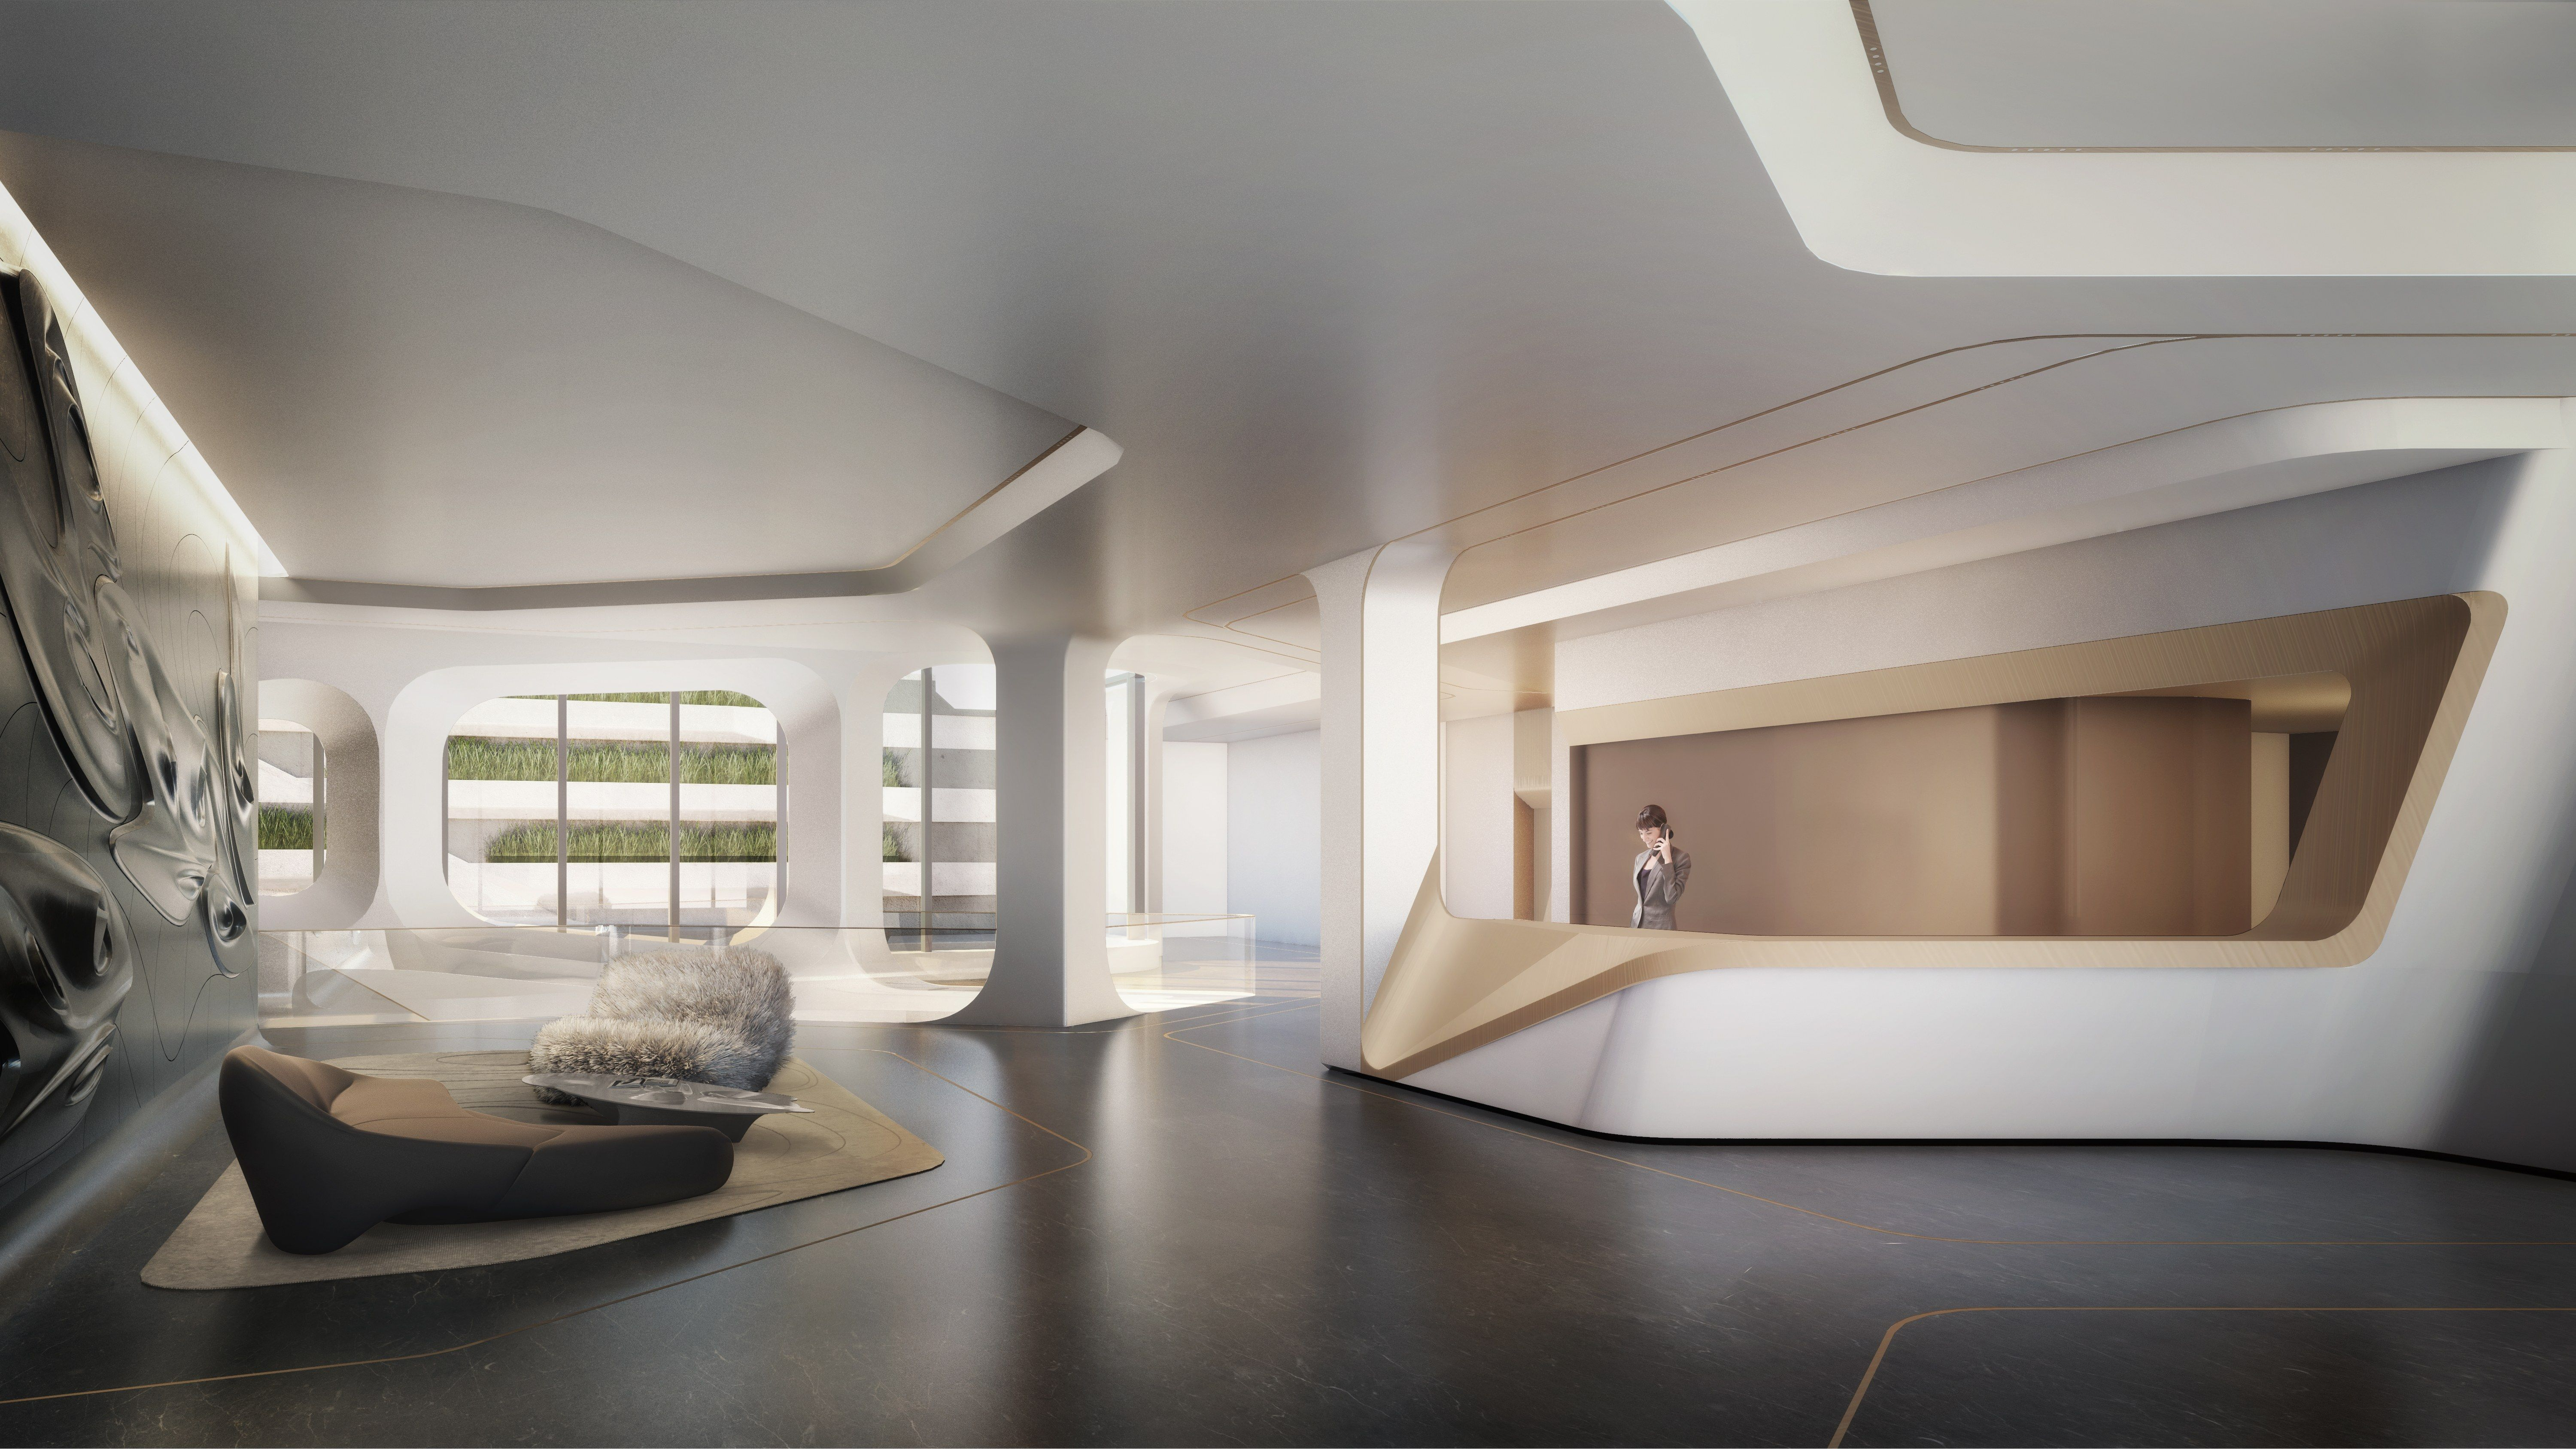 Tour Nyc S First Zaha Hadid Designed Apartments With Images